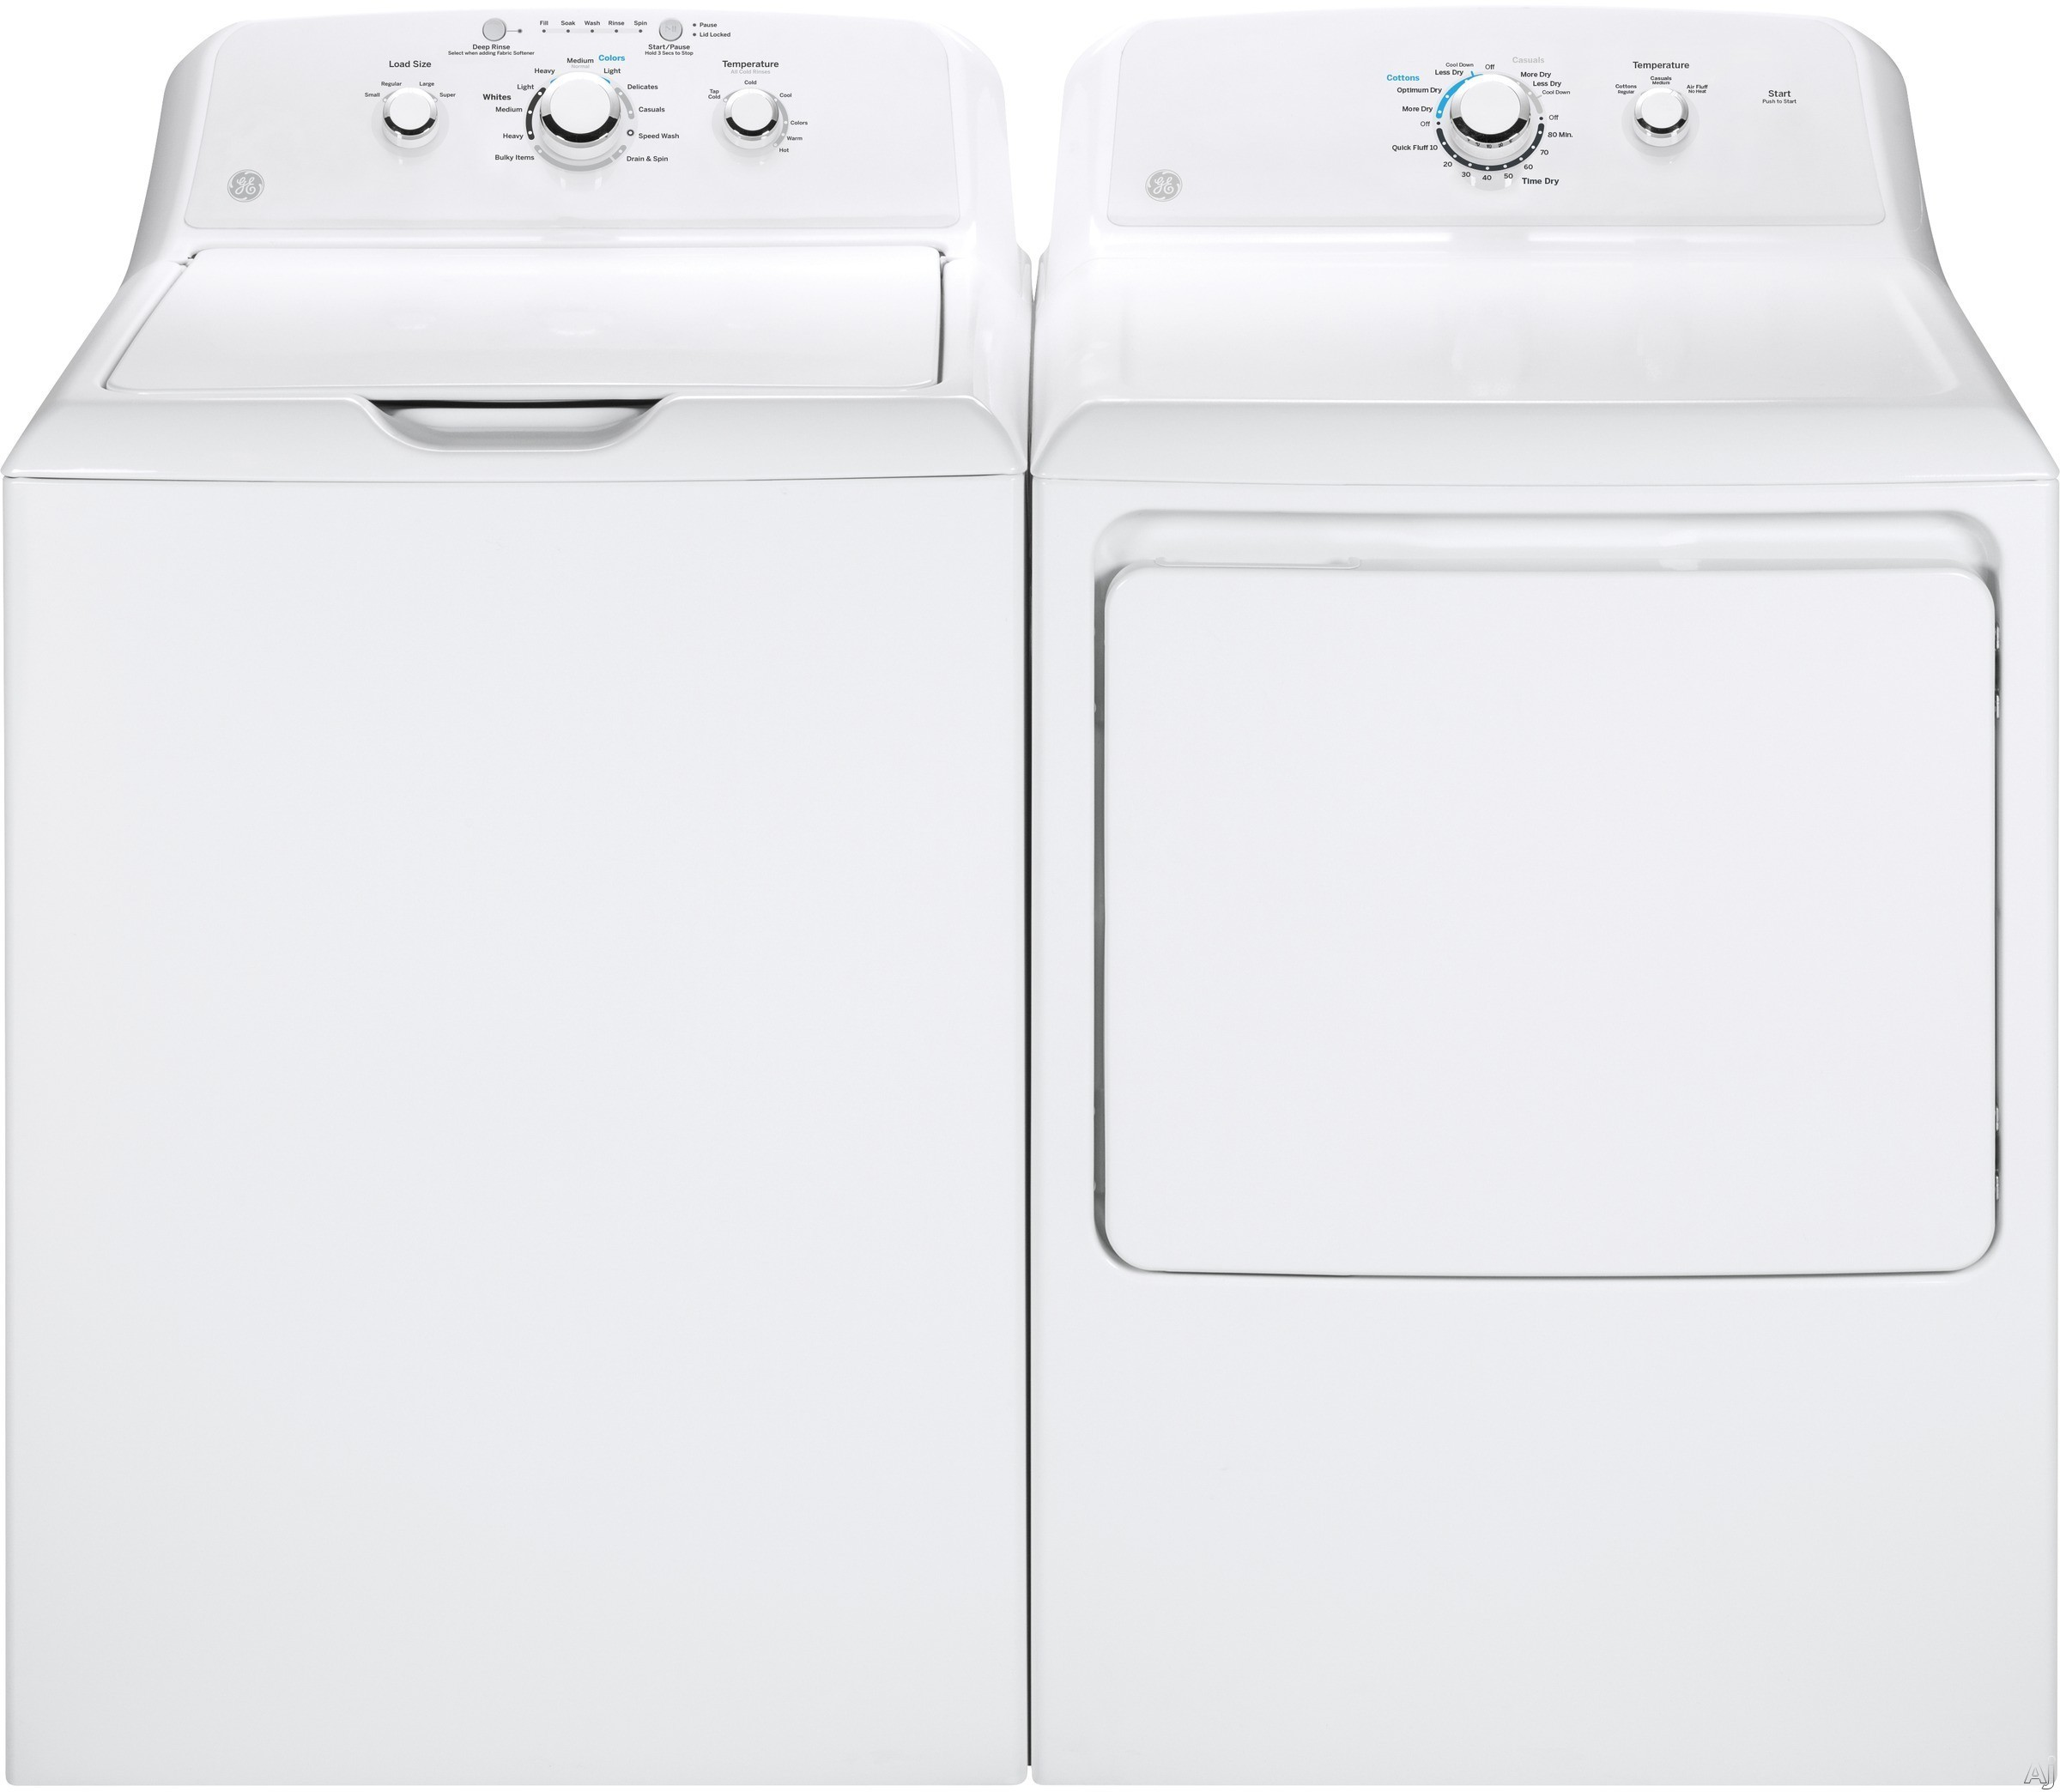 Washer And Dryer Calgary Ge Side By Side Washer Dryer Set